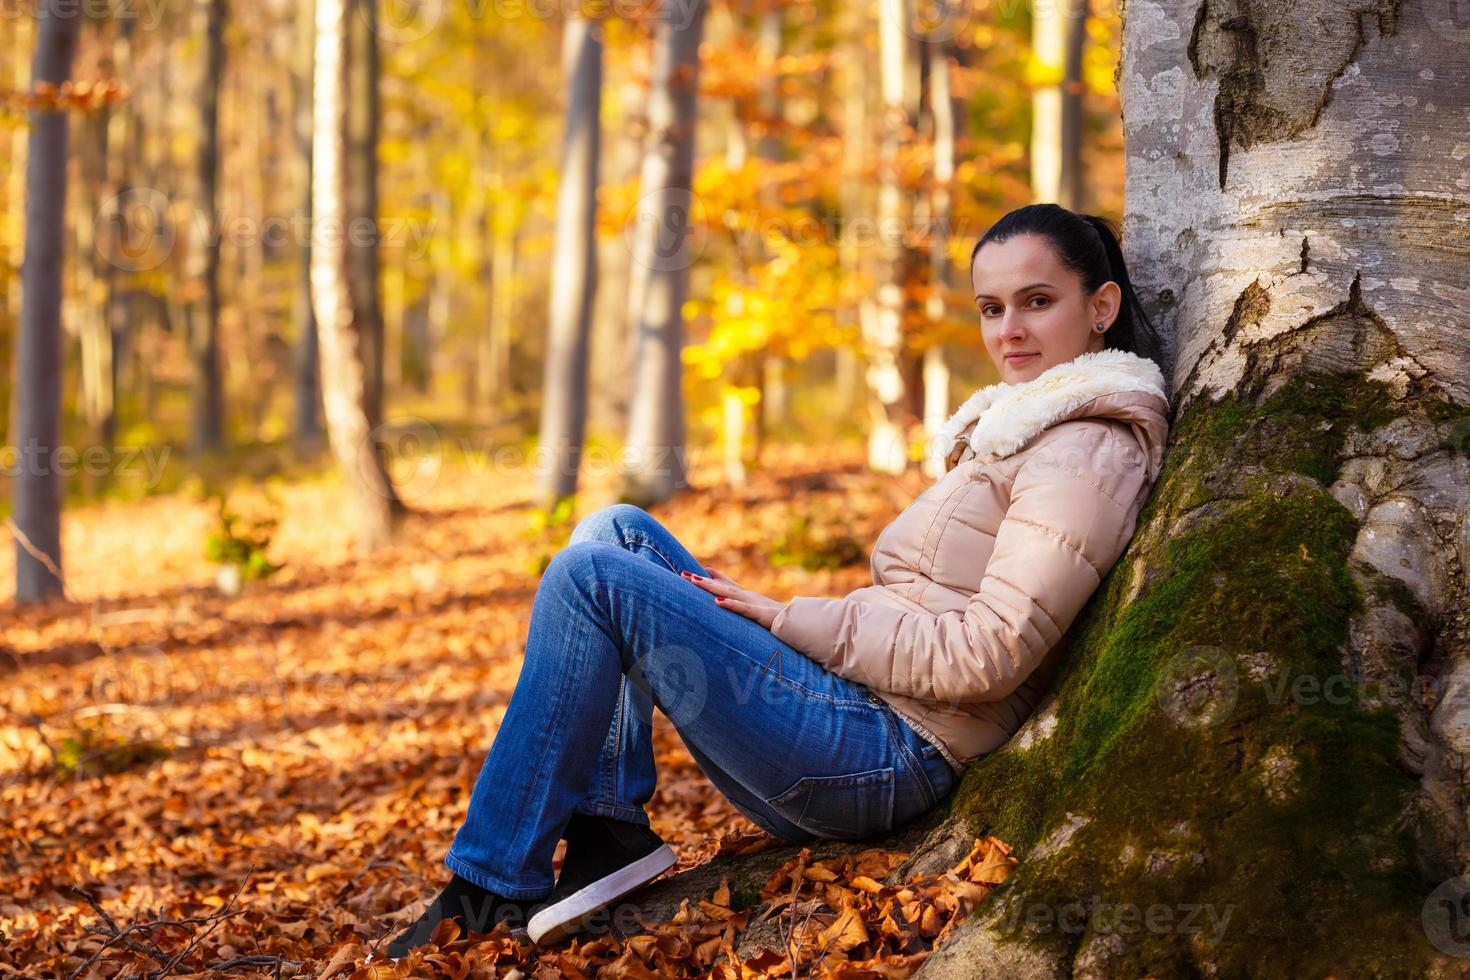 Woman relaxing in nature while autumn season photo